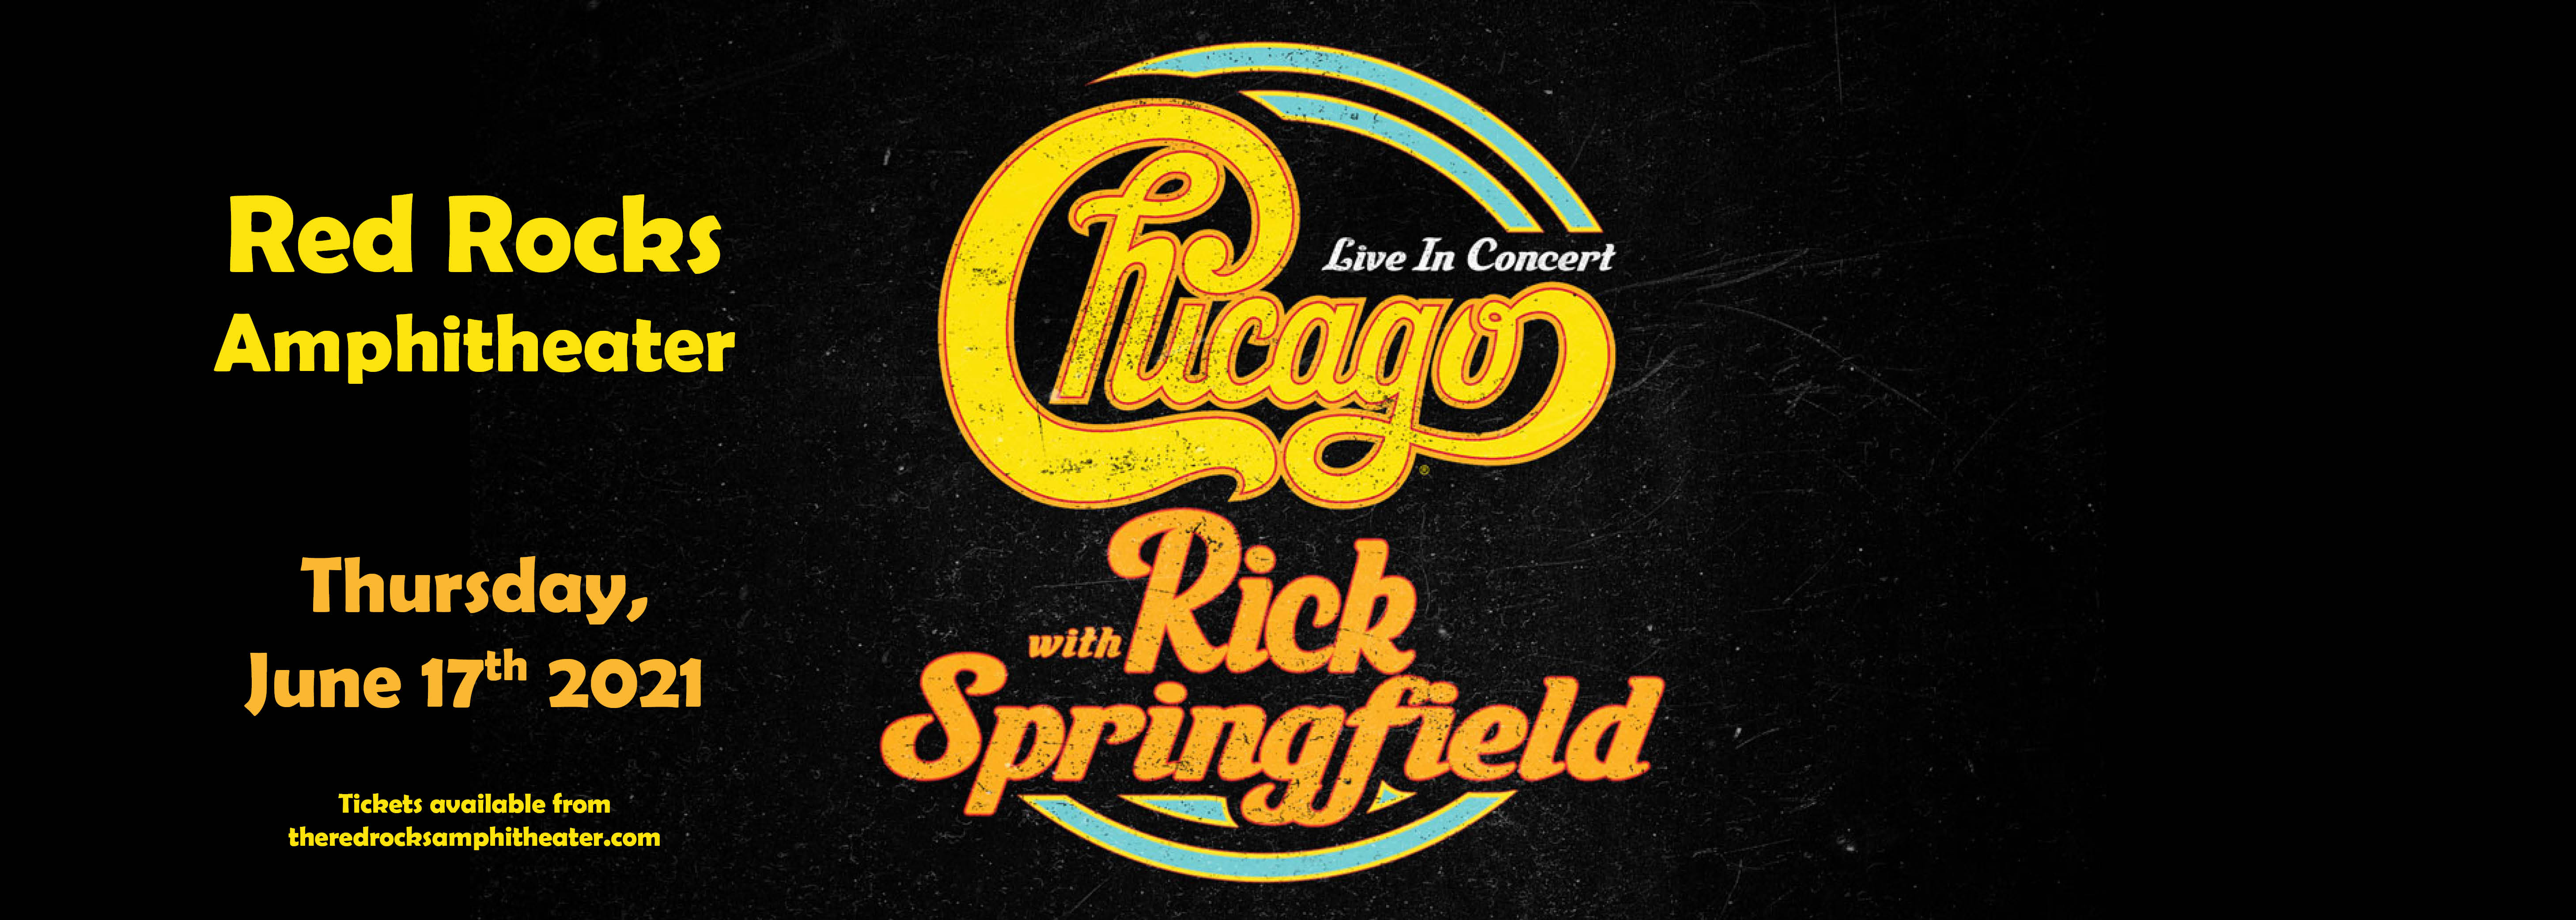 Chicago - The Band & Rick Springfield [CANCELLED] at Red Rocks Amphitheater